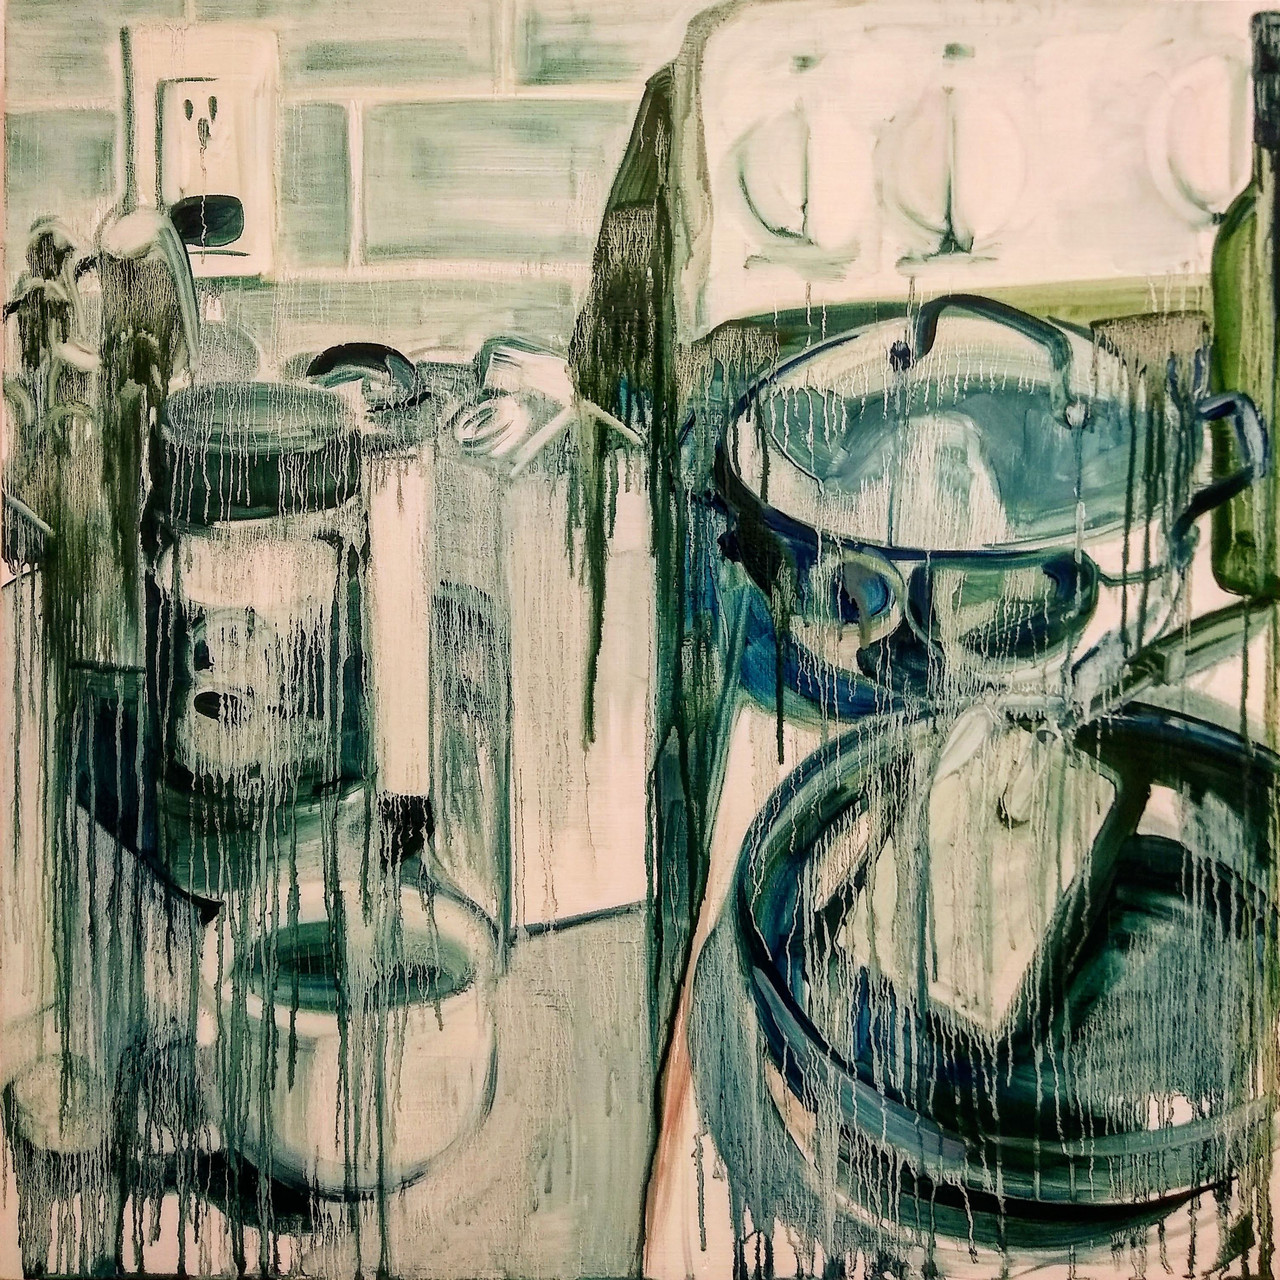 Countertop Still Life 2/20/20 painting by Noël Ash.